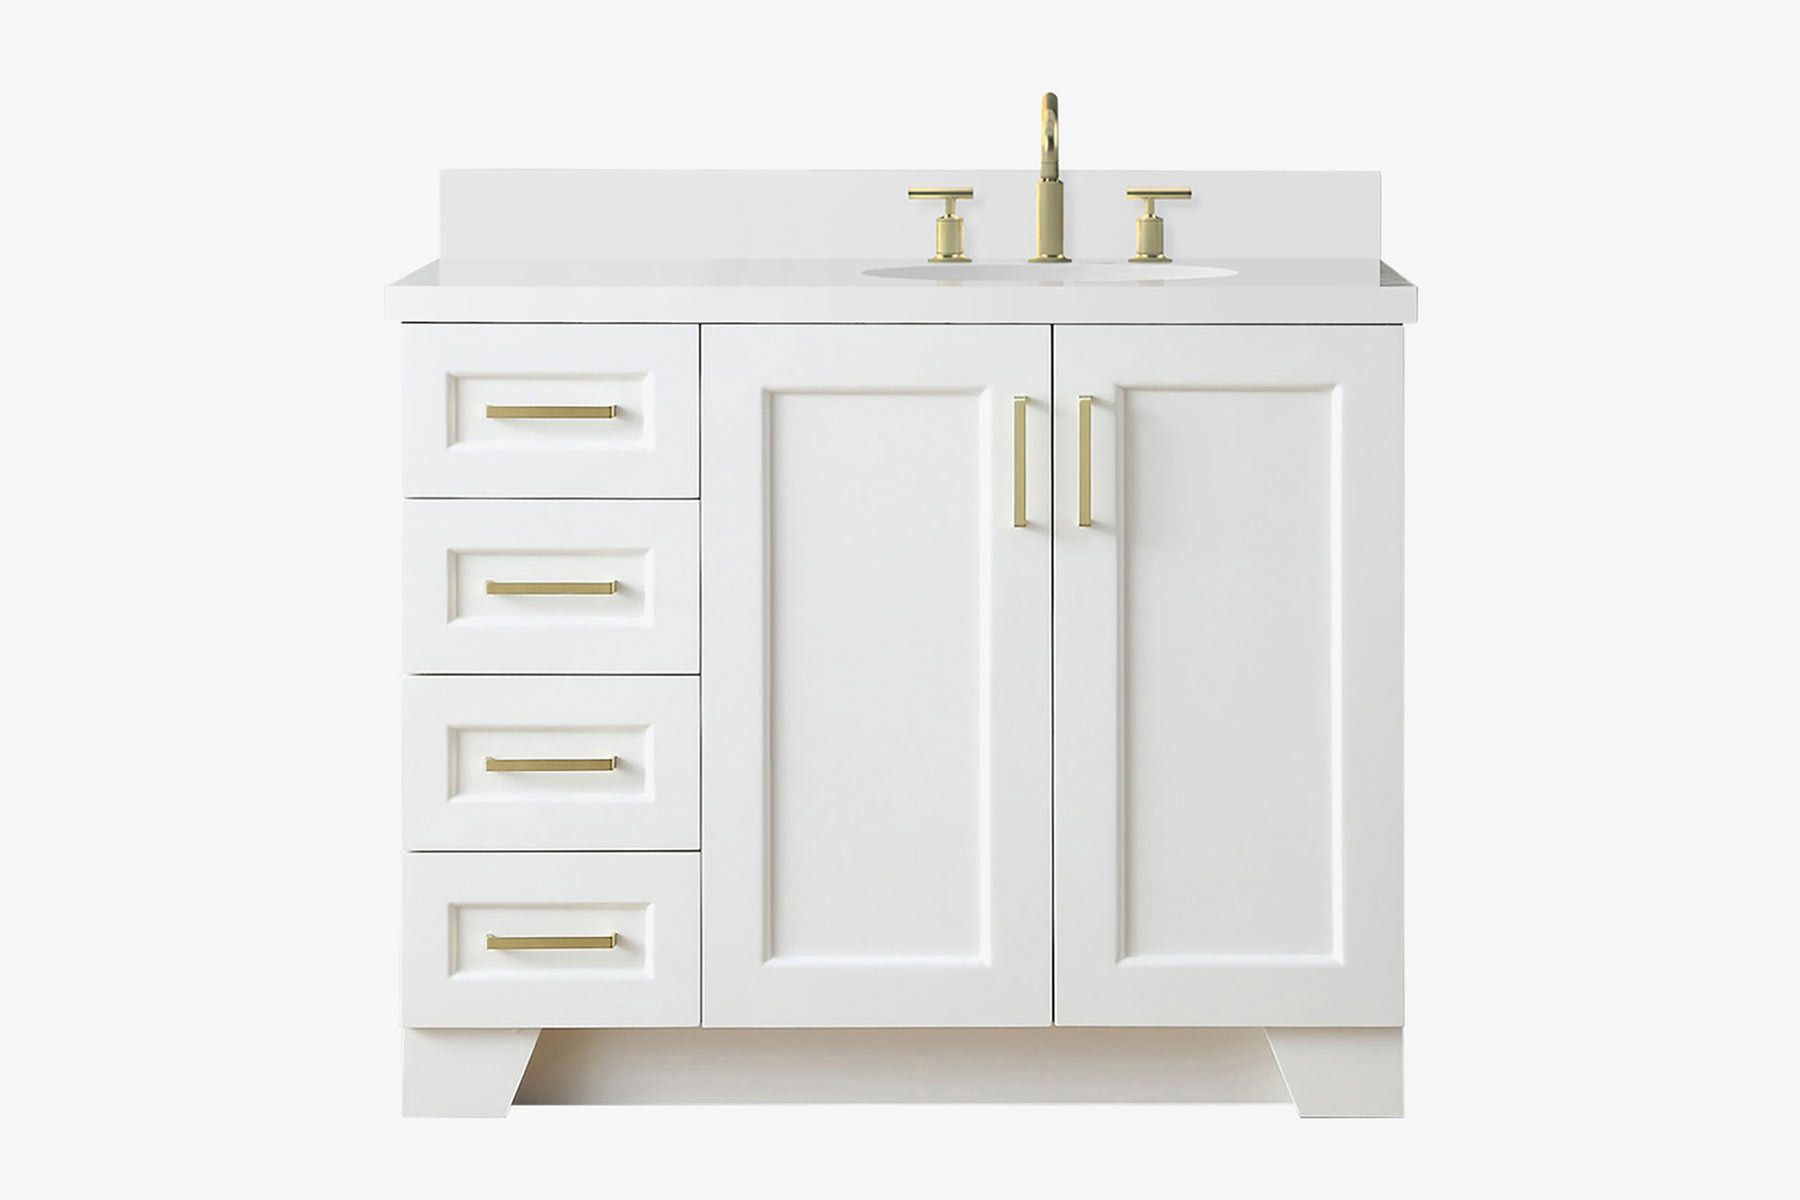 Ariel Taylor 43 Inch Bathroom Vanity In White With White Quartz Countertop With Right Offset Oval Sink Bathroom Vanities Bathroom Sink Vanities Accessories Emosens Fr